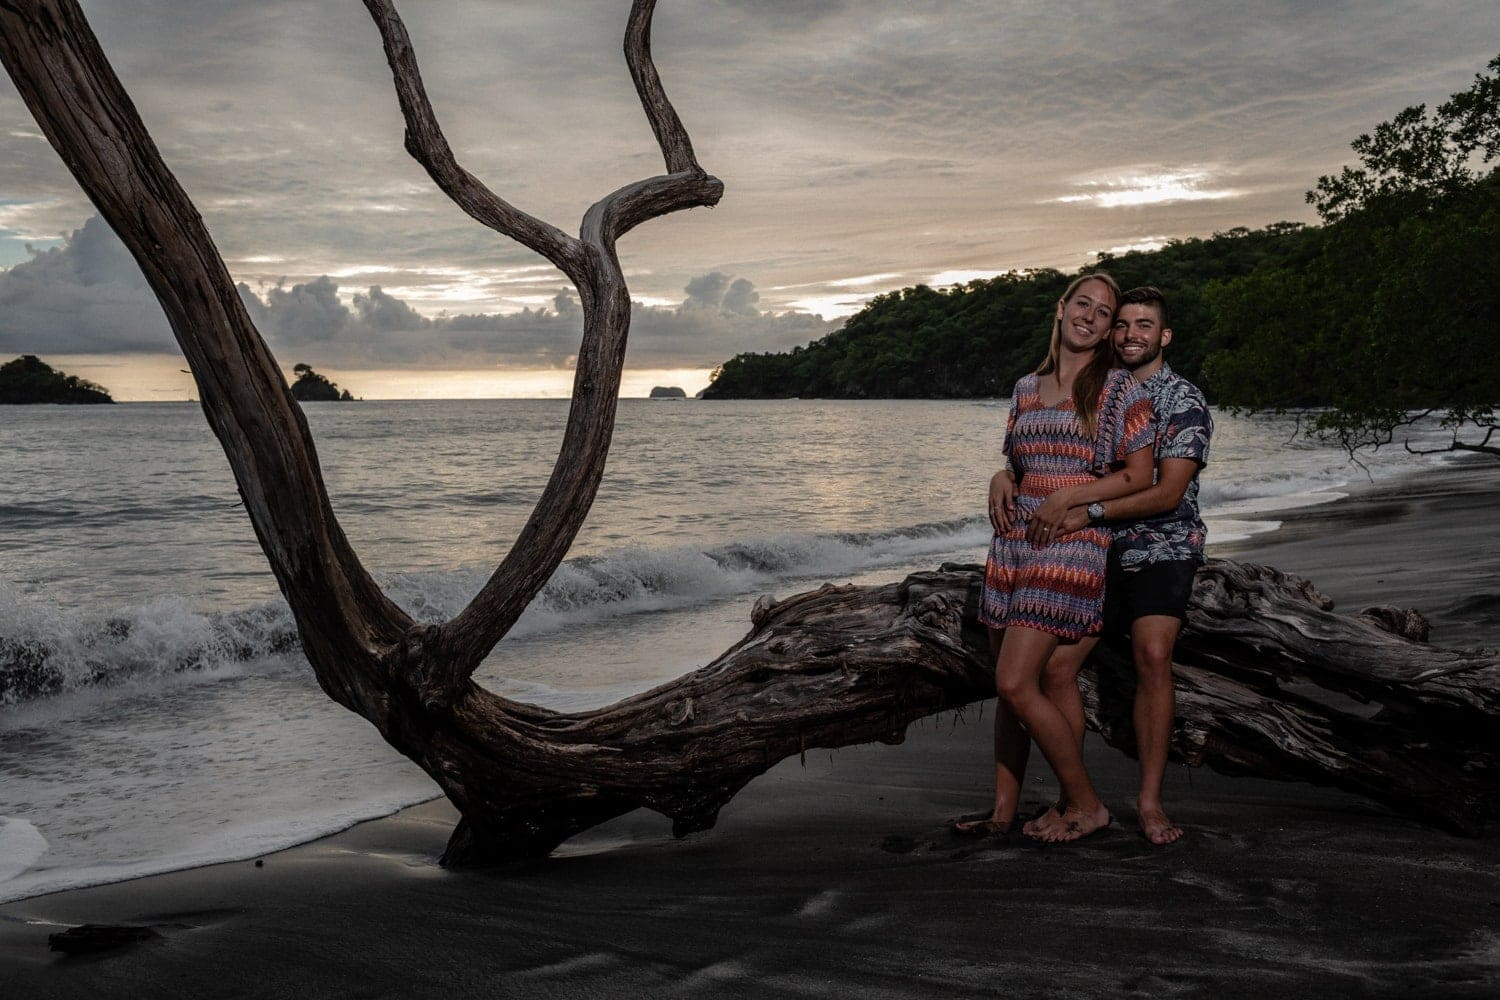 Beautiful photo of just engaged couple at sunset on a beach in Costa Rica.